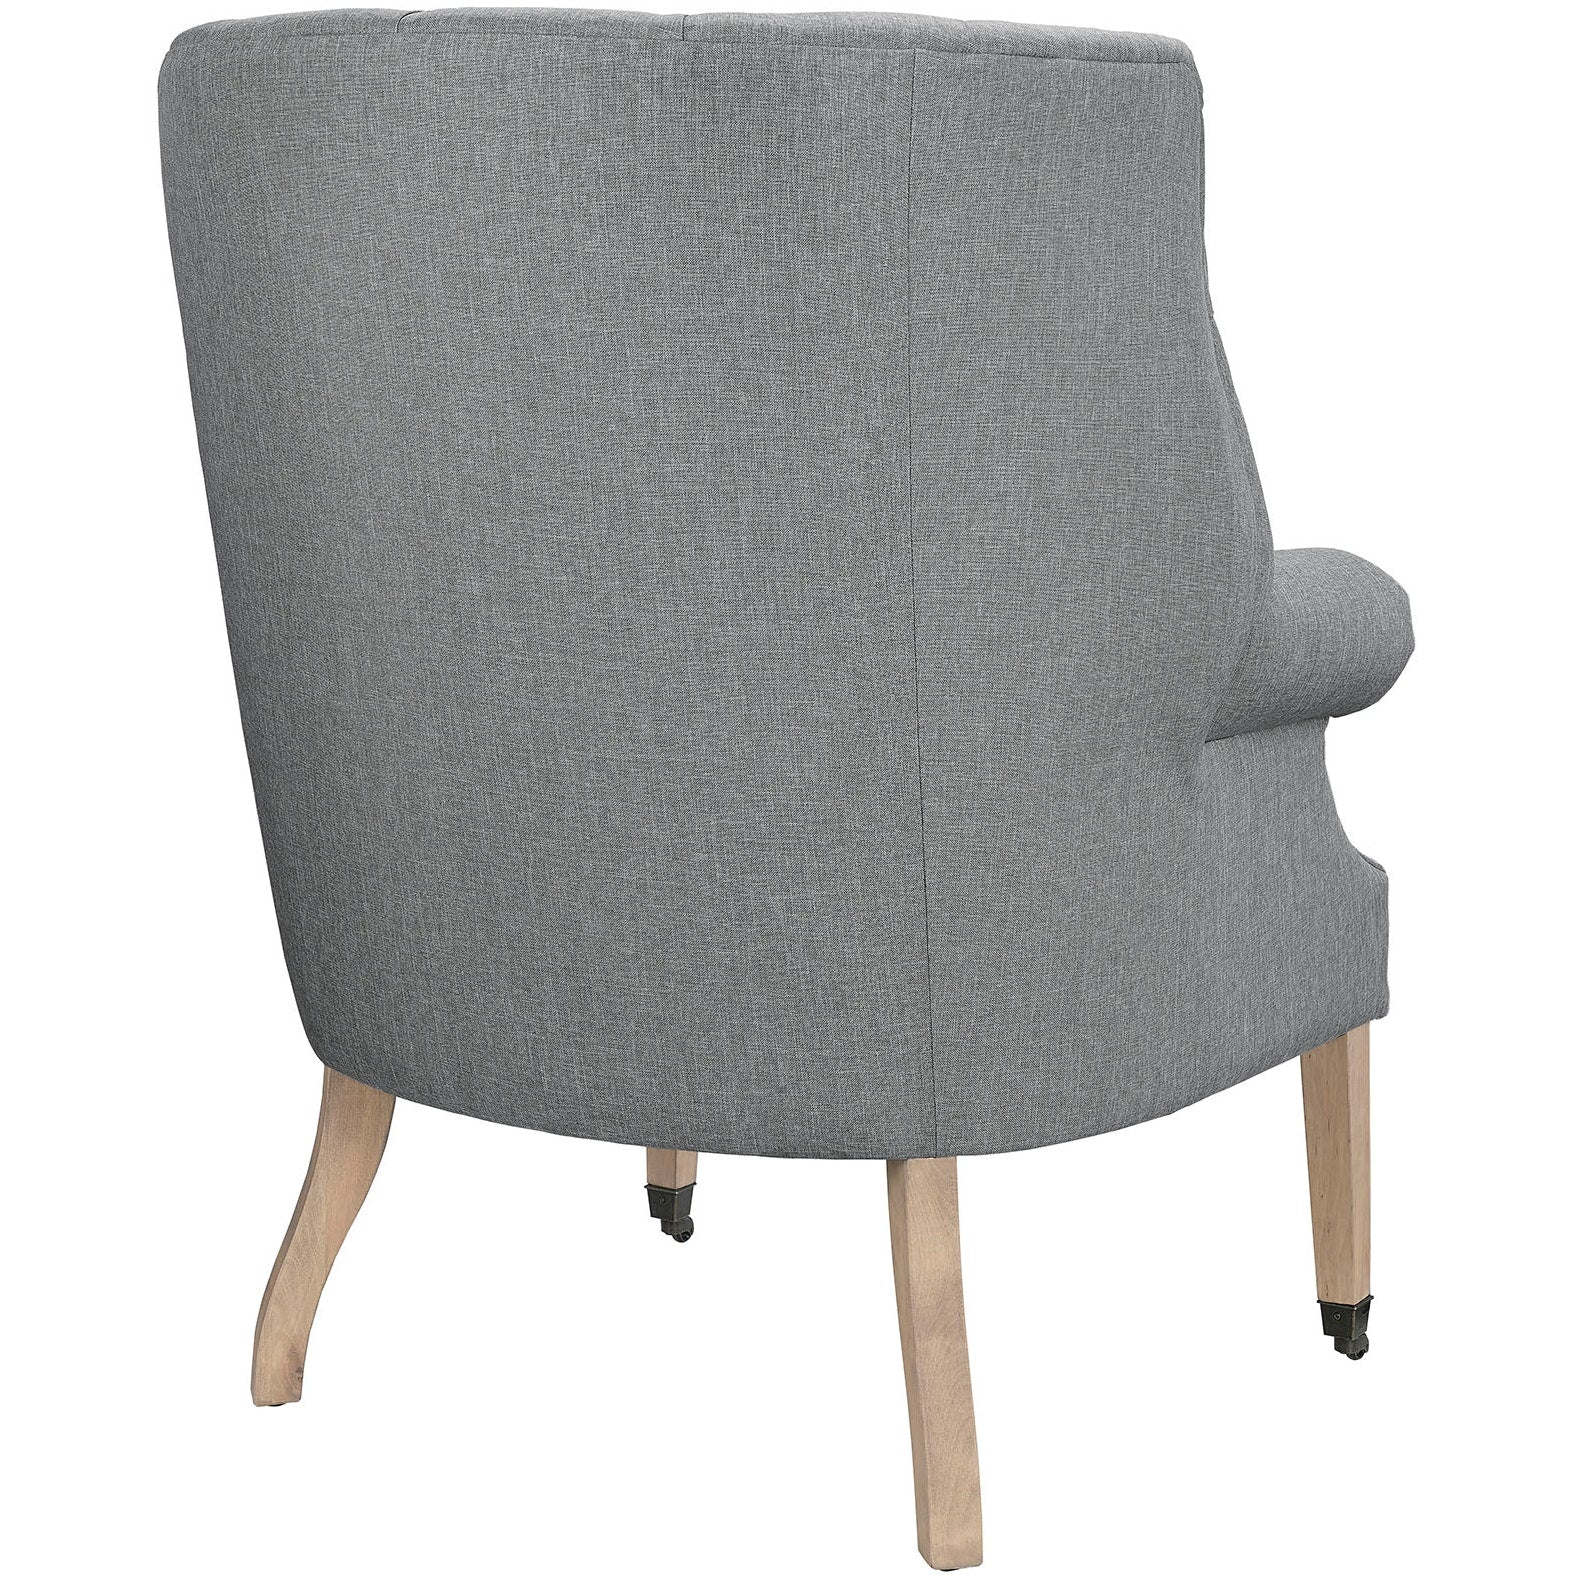 Chart Upholstered Fabric Lounge Chair - Light Gray